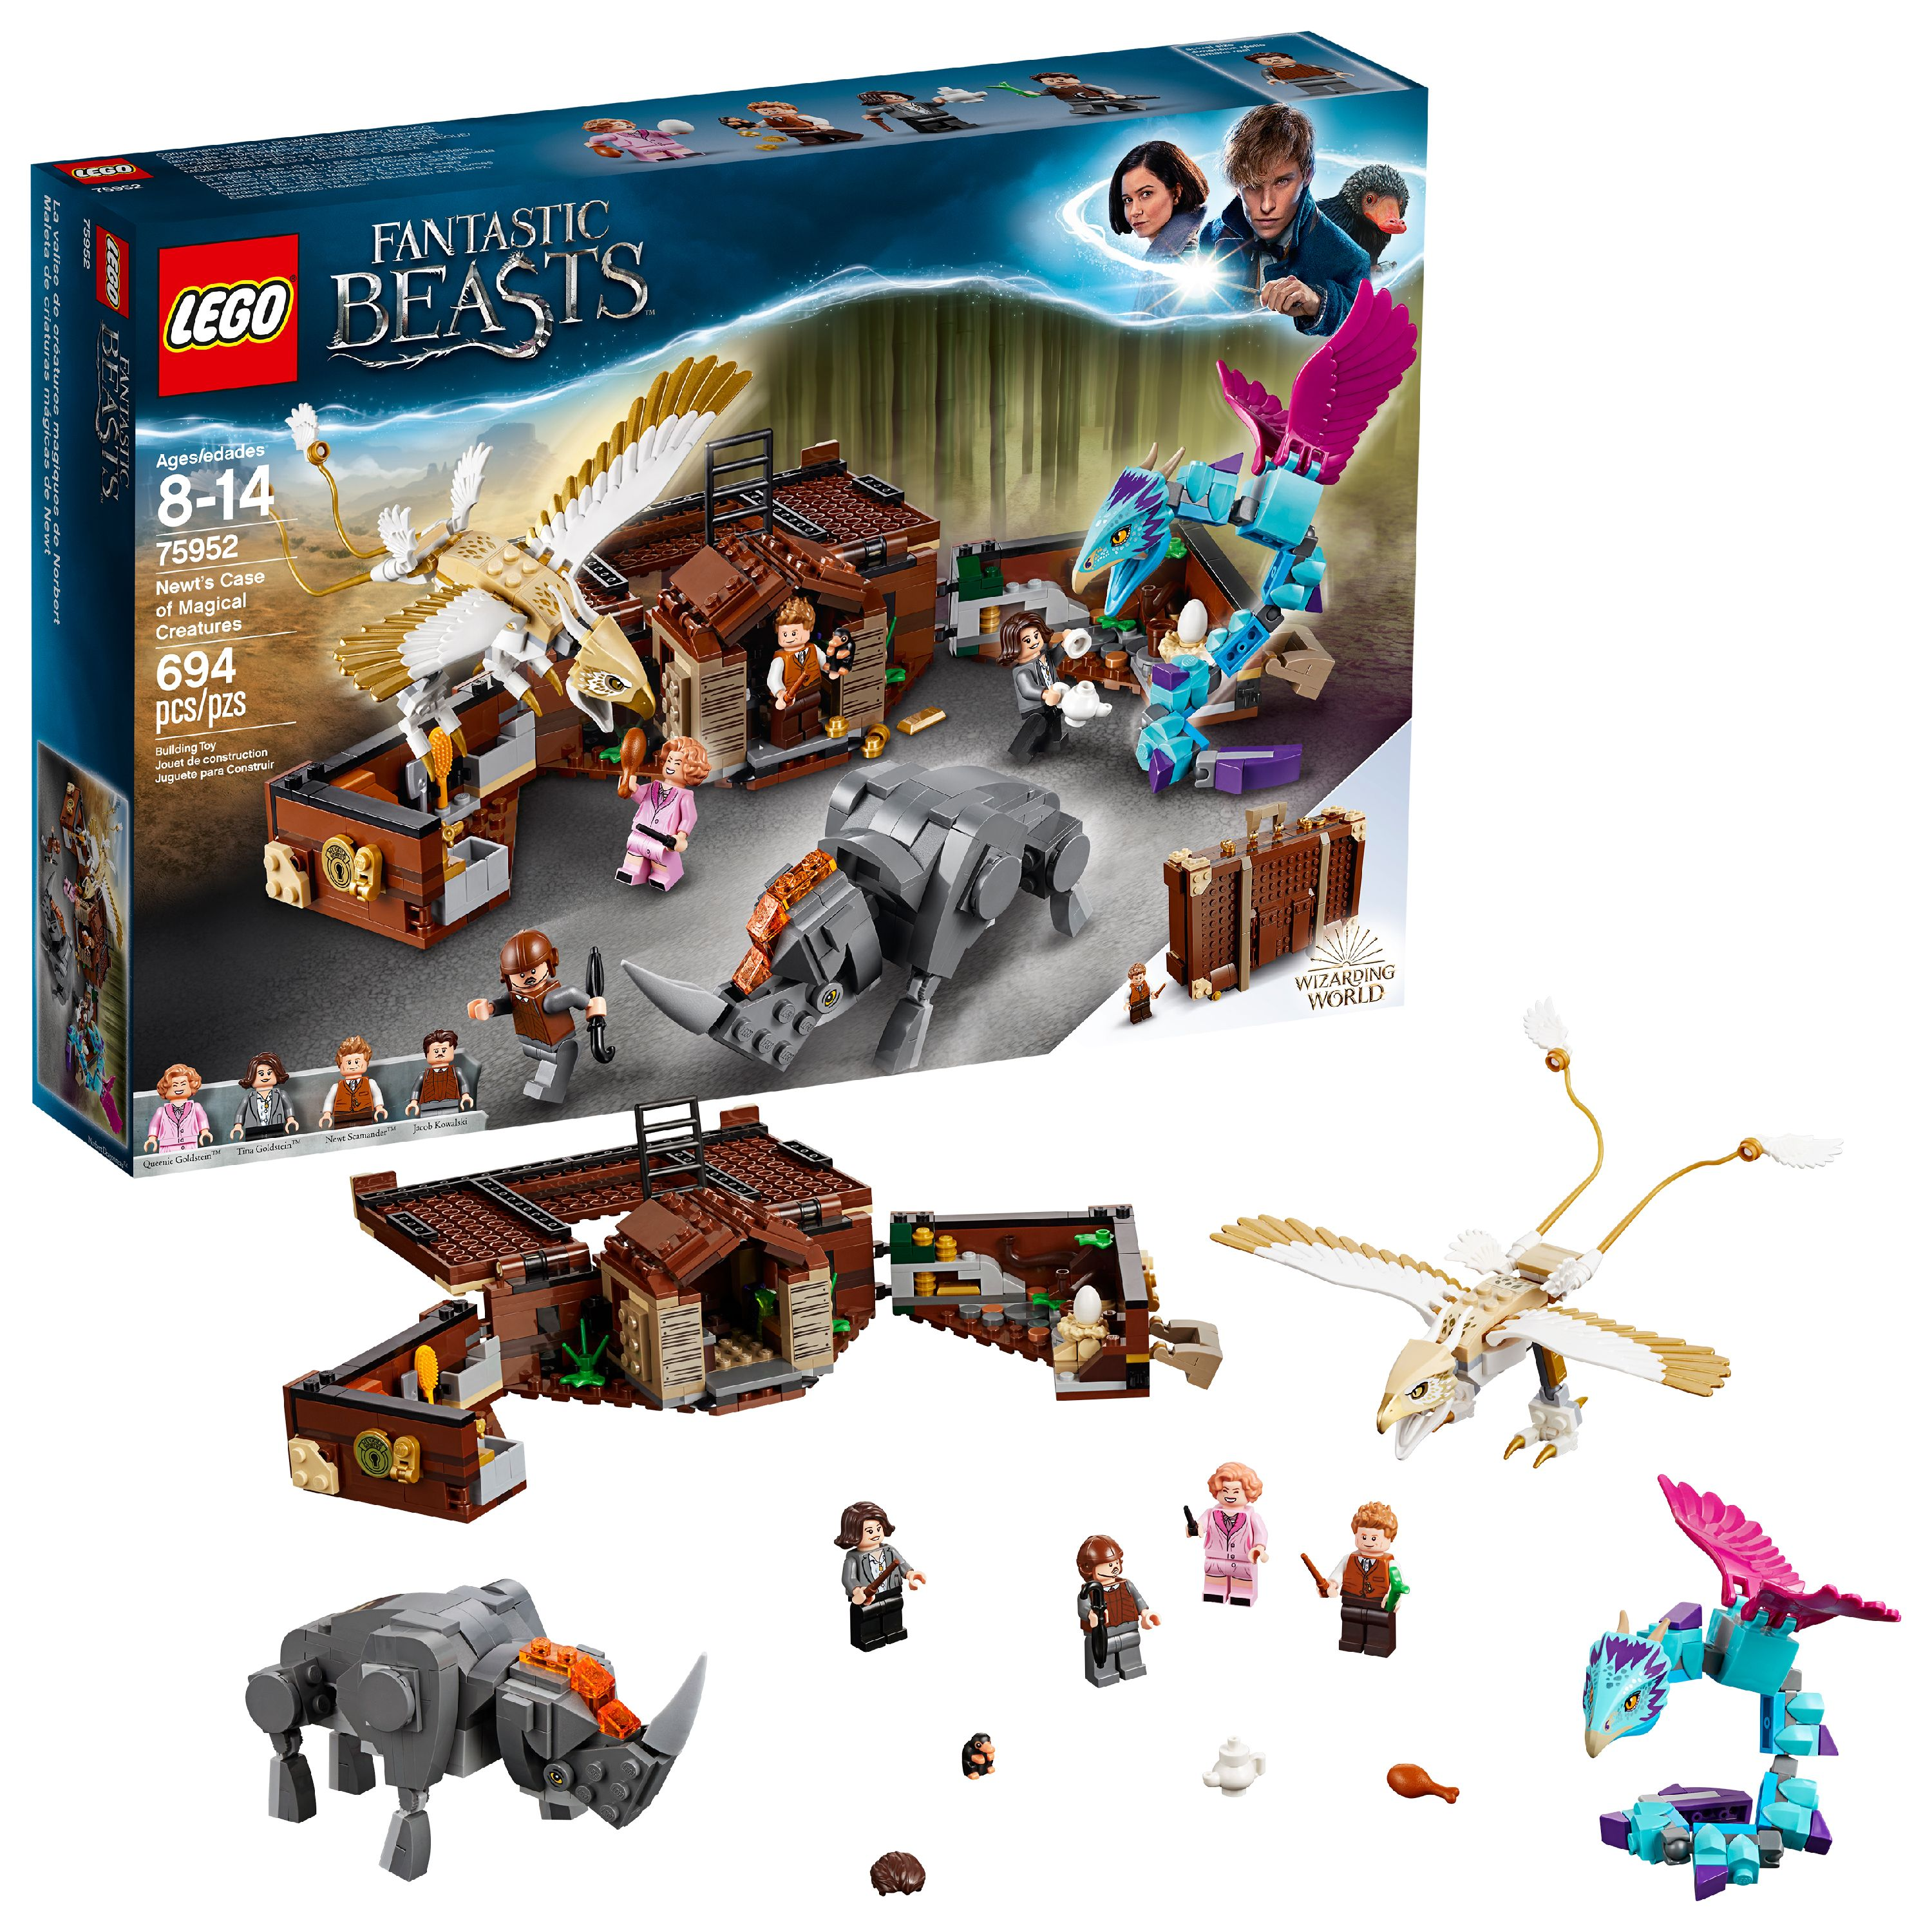 LEGO Harry Potter TM Newt's Case of Magical Creatures 75952